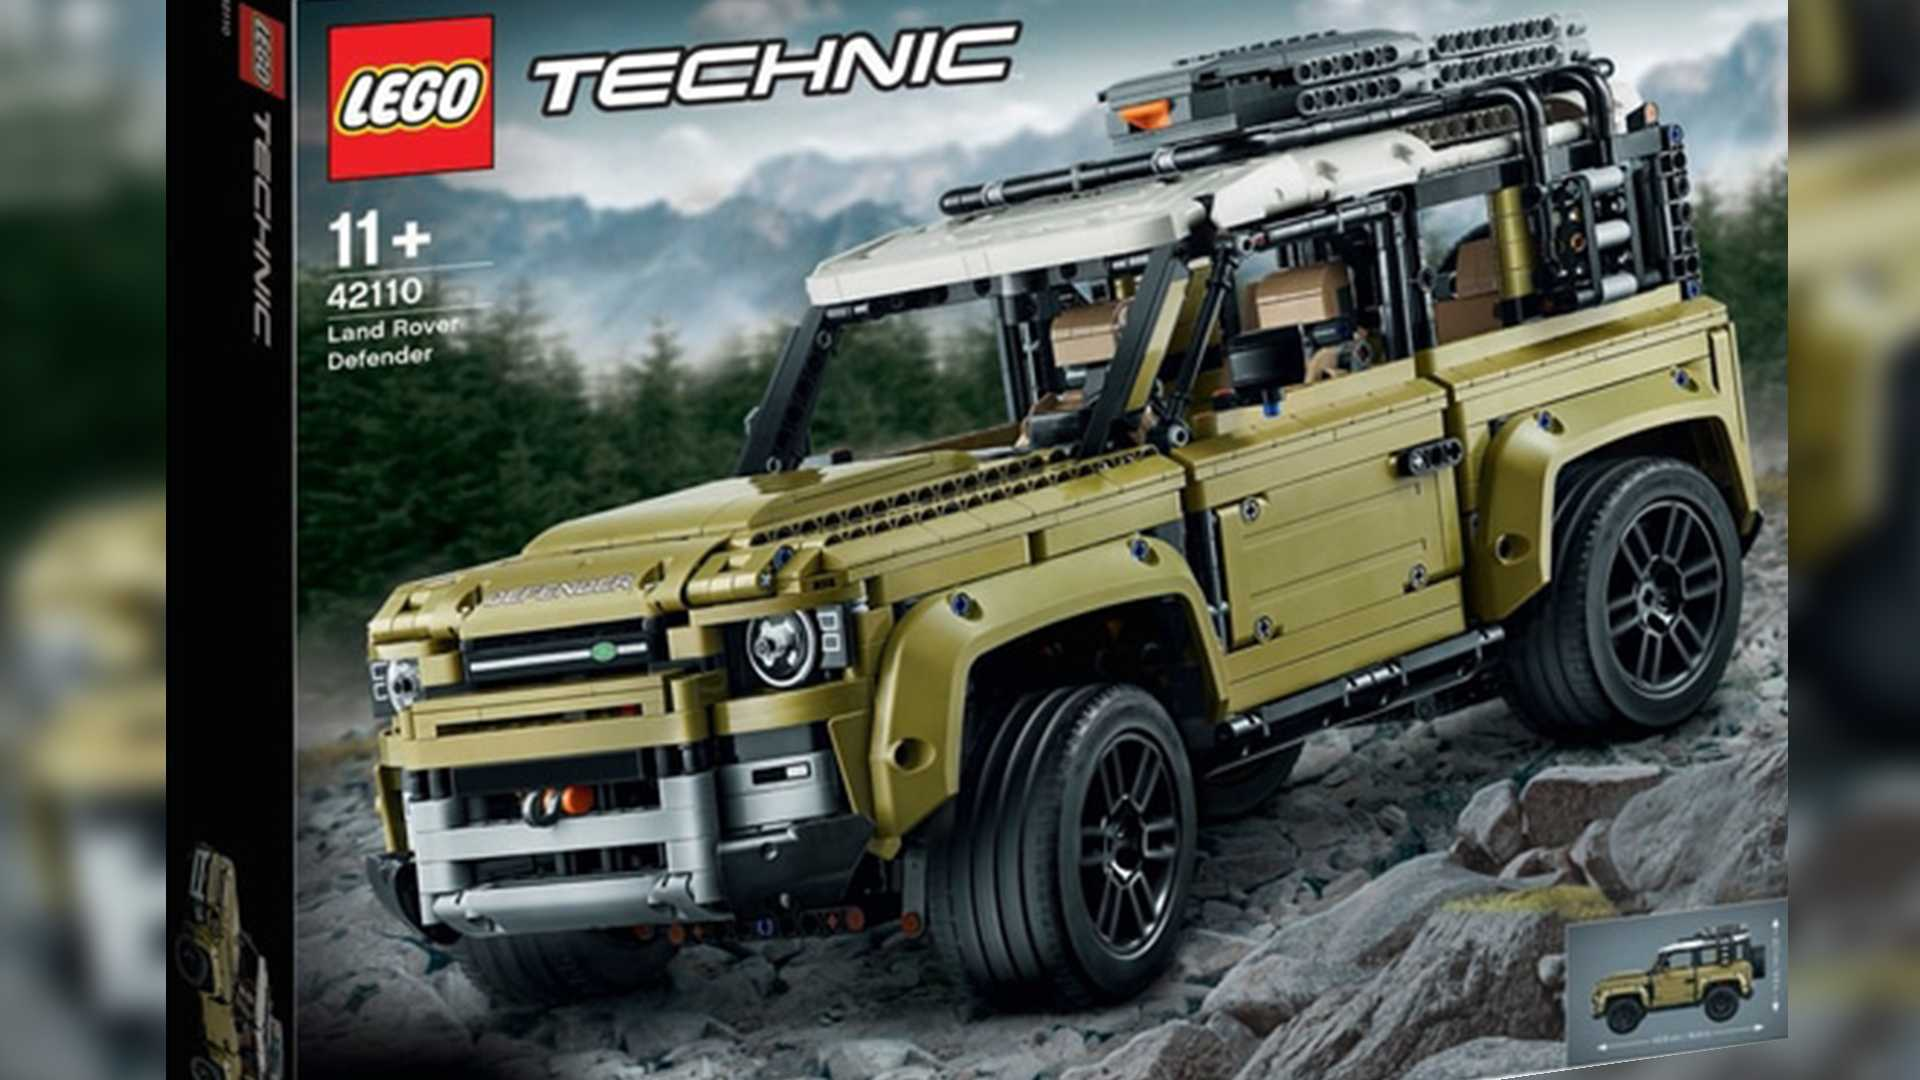 New Lego Technic Sets 2020 Lego Announces 2020 Land Rover Defender Technic Set